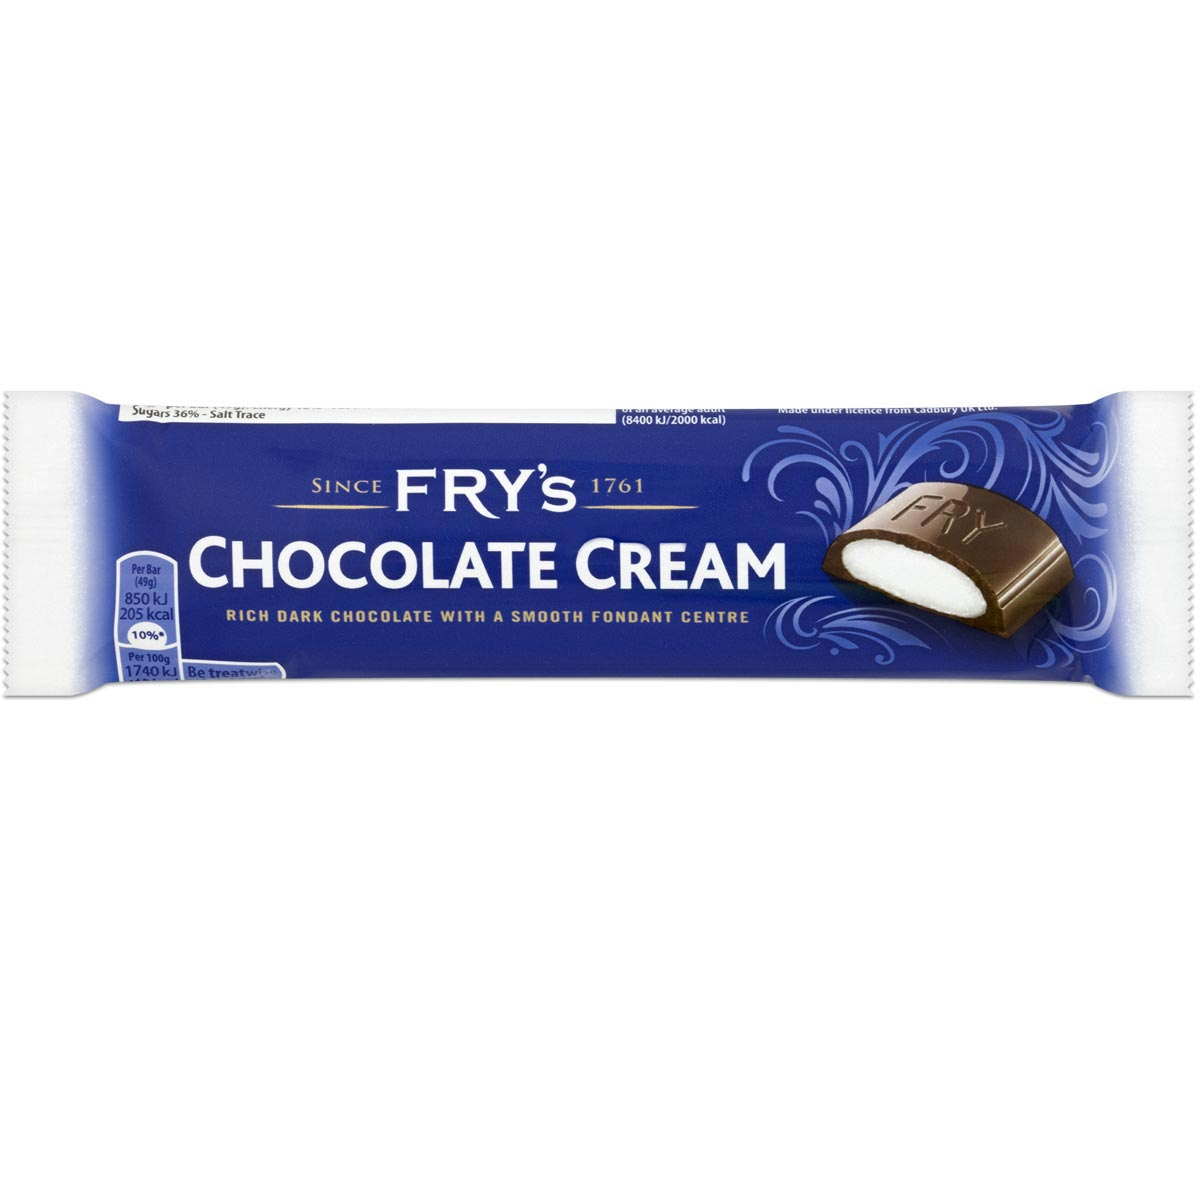 Fry's Chocolate Cream Box of 48